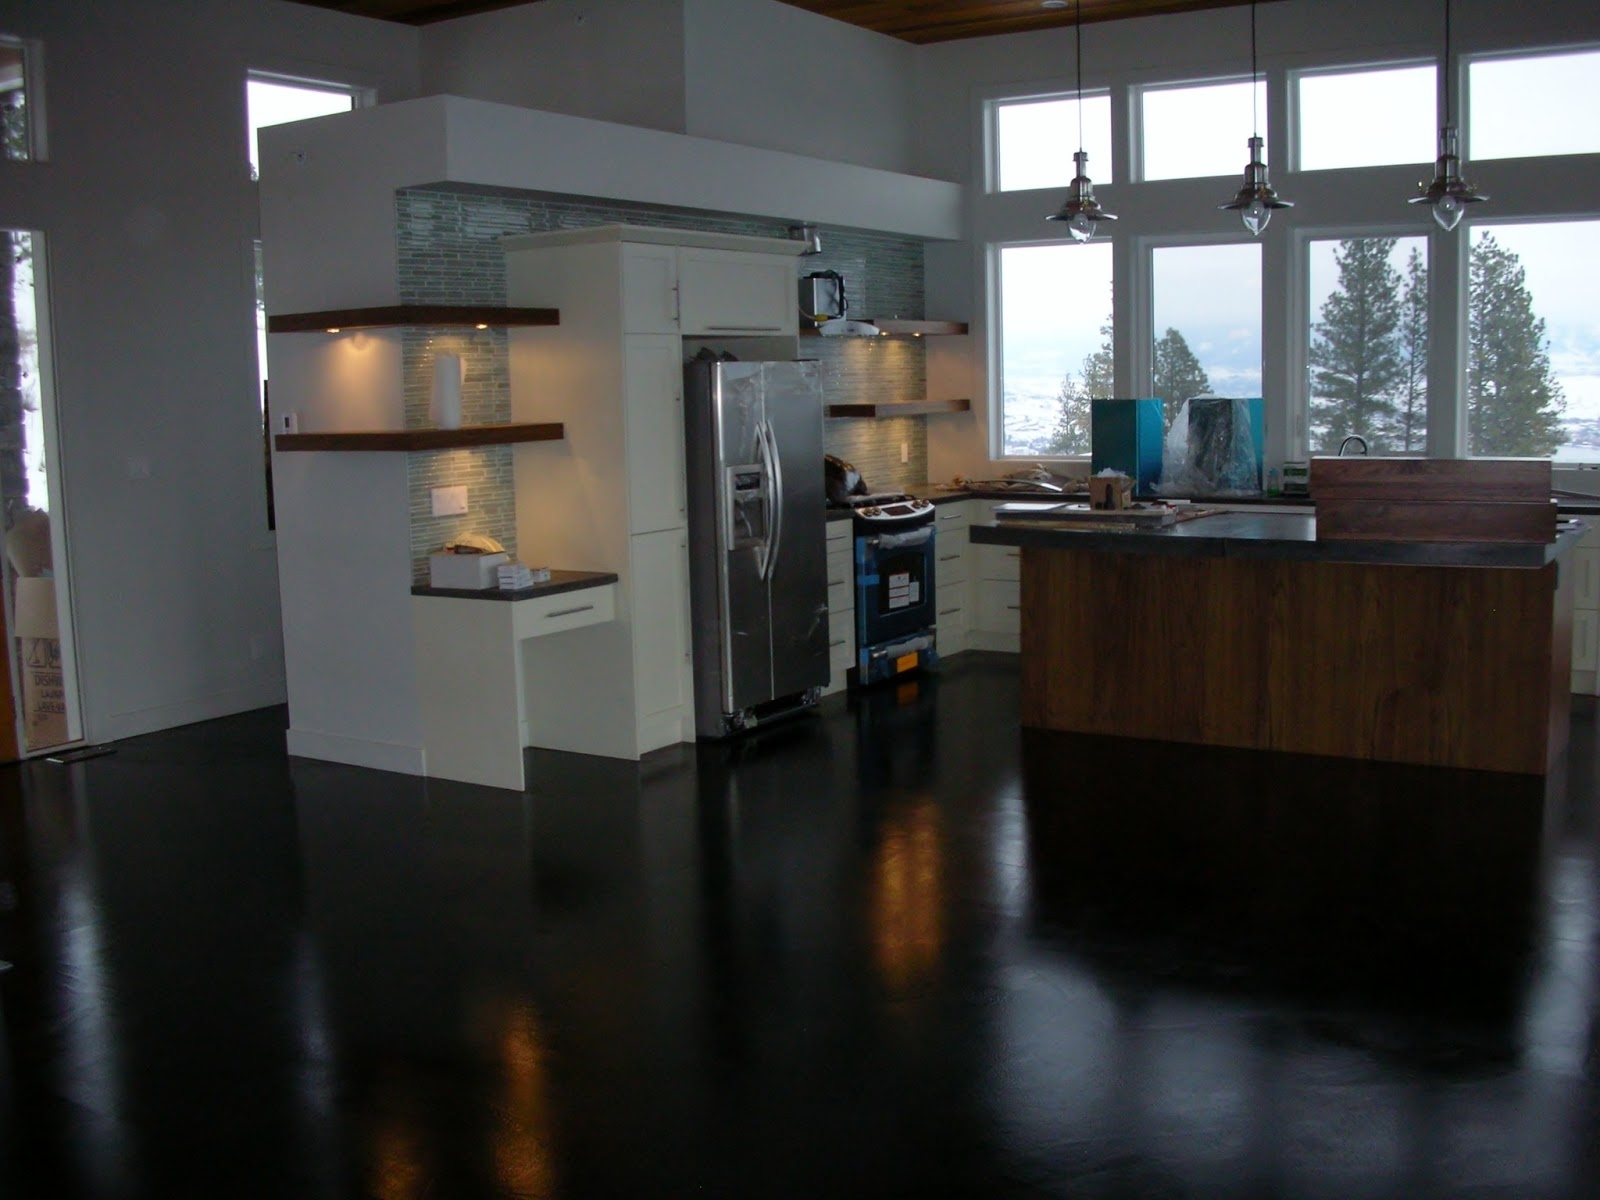 MODE CONCRETE: Considering Concrete Floors in the Kitchen ...